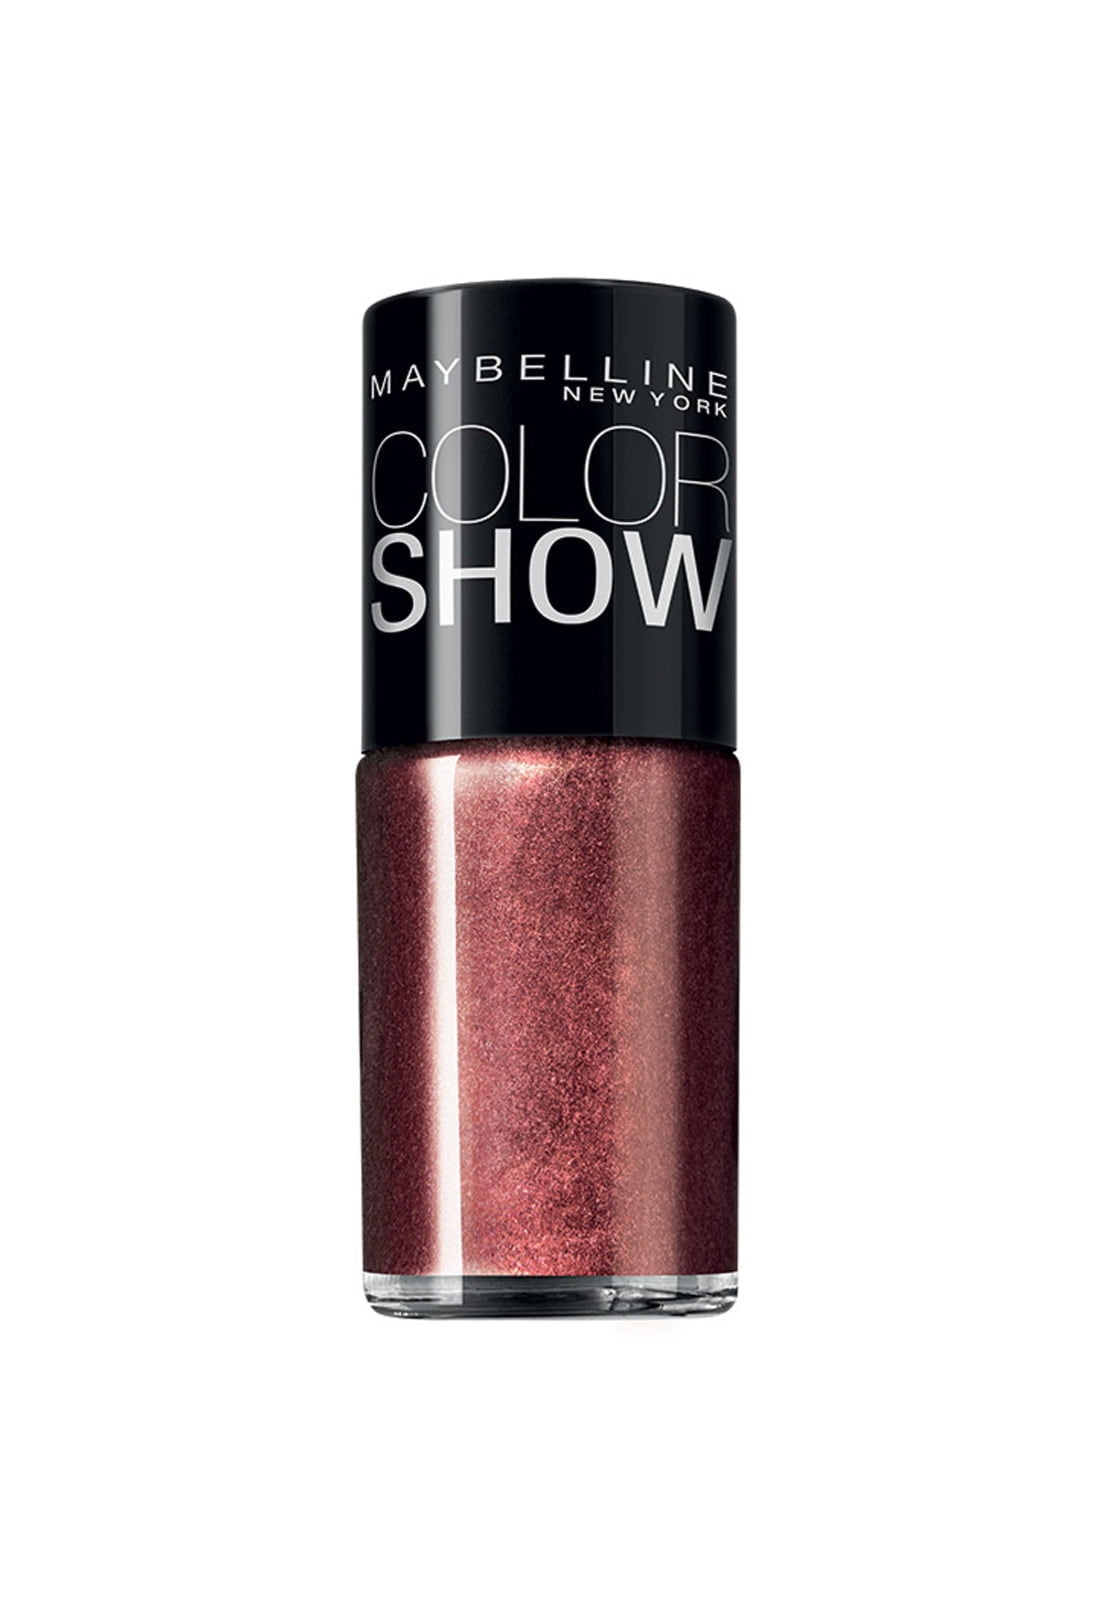 ESMALTE COLOR SHOW 10ML MAYBELLINE - 590 BRICK SHIMMER